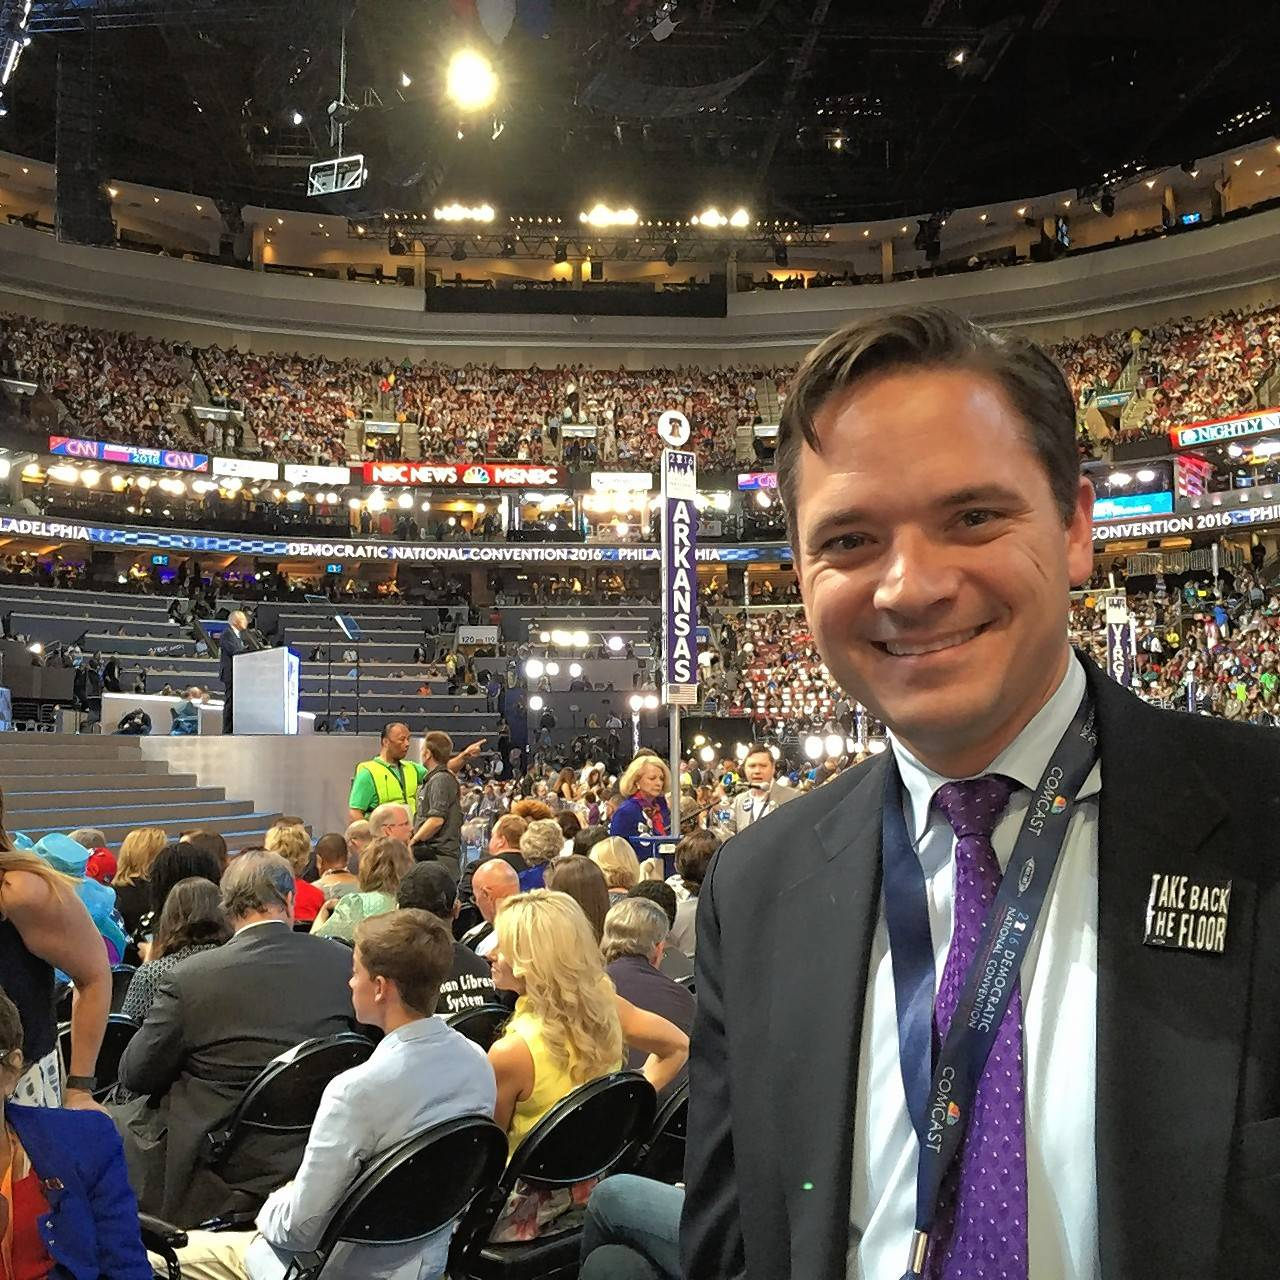 Delegate Diary: A Sanders delegate from Clinton country